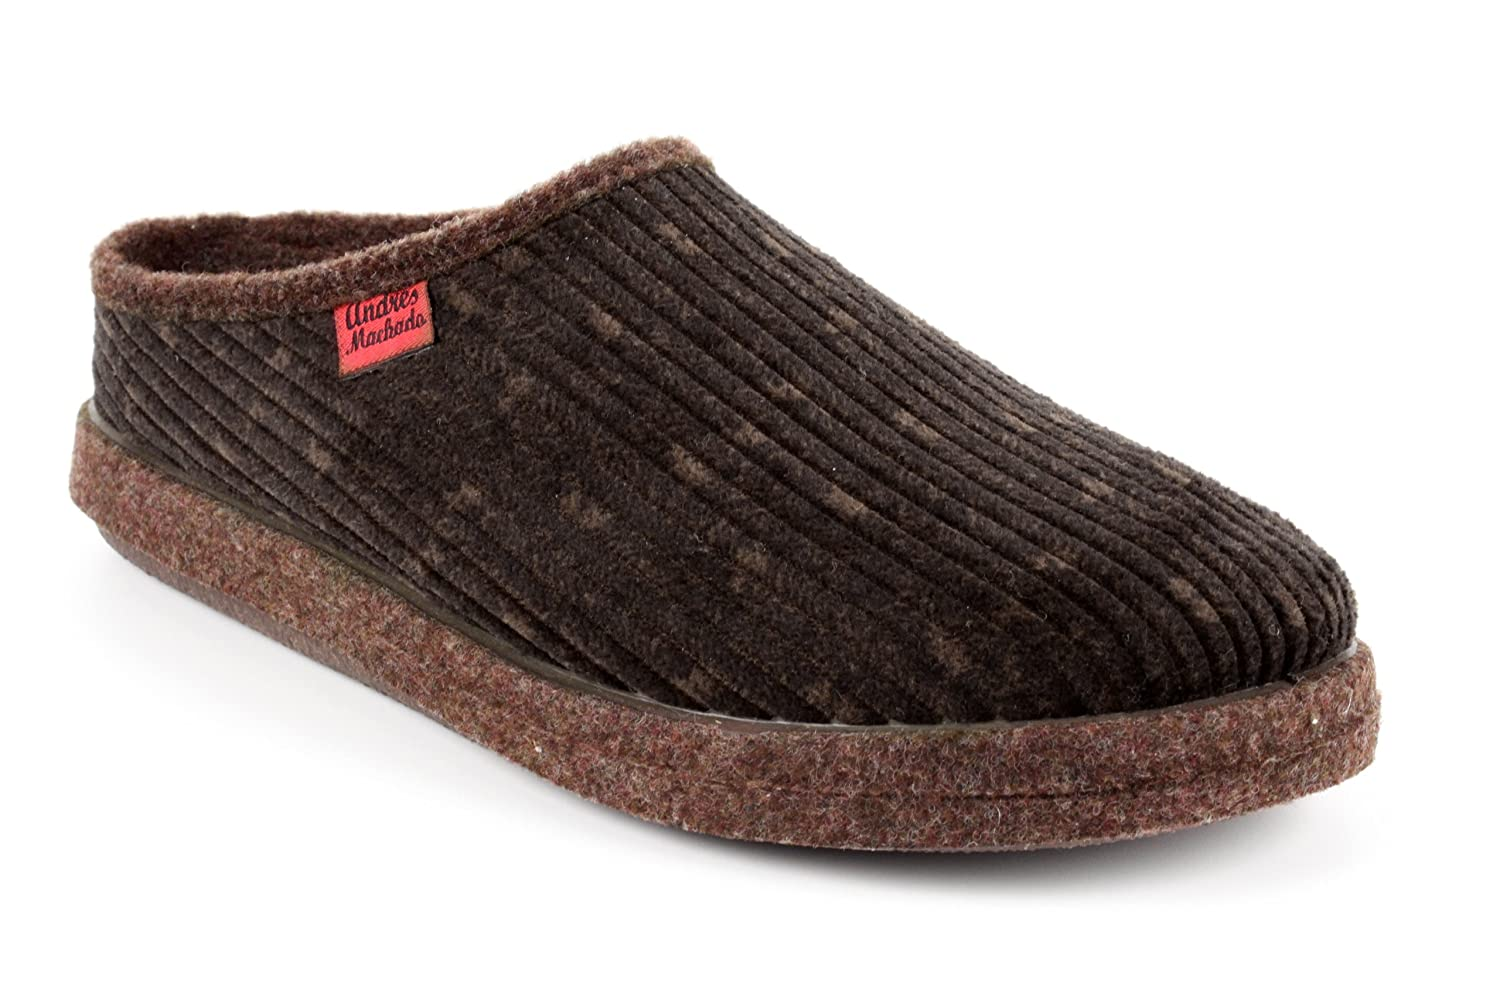 Andres Machado.AM001.AUTHÉNTIQUES chaussons MADE IN SPAIN Grandes Unisex.Petites et Pointures. Grandes Marron Pointures. 26/50 Velours C?telé Marron c52f3b5 - reprogrammed.space